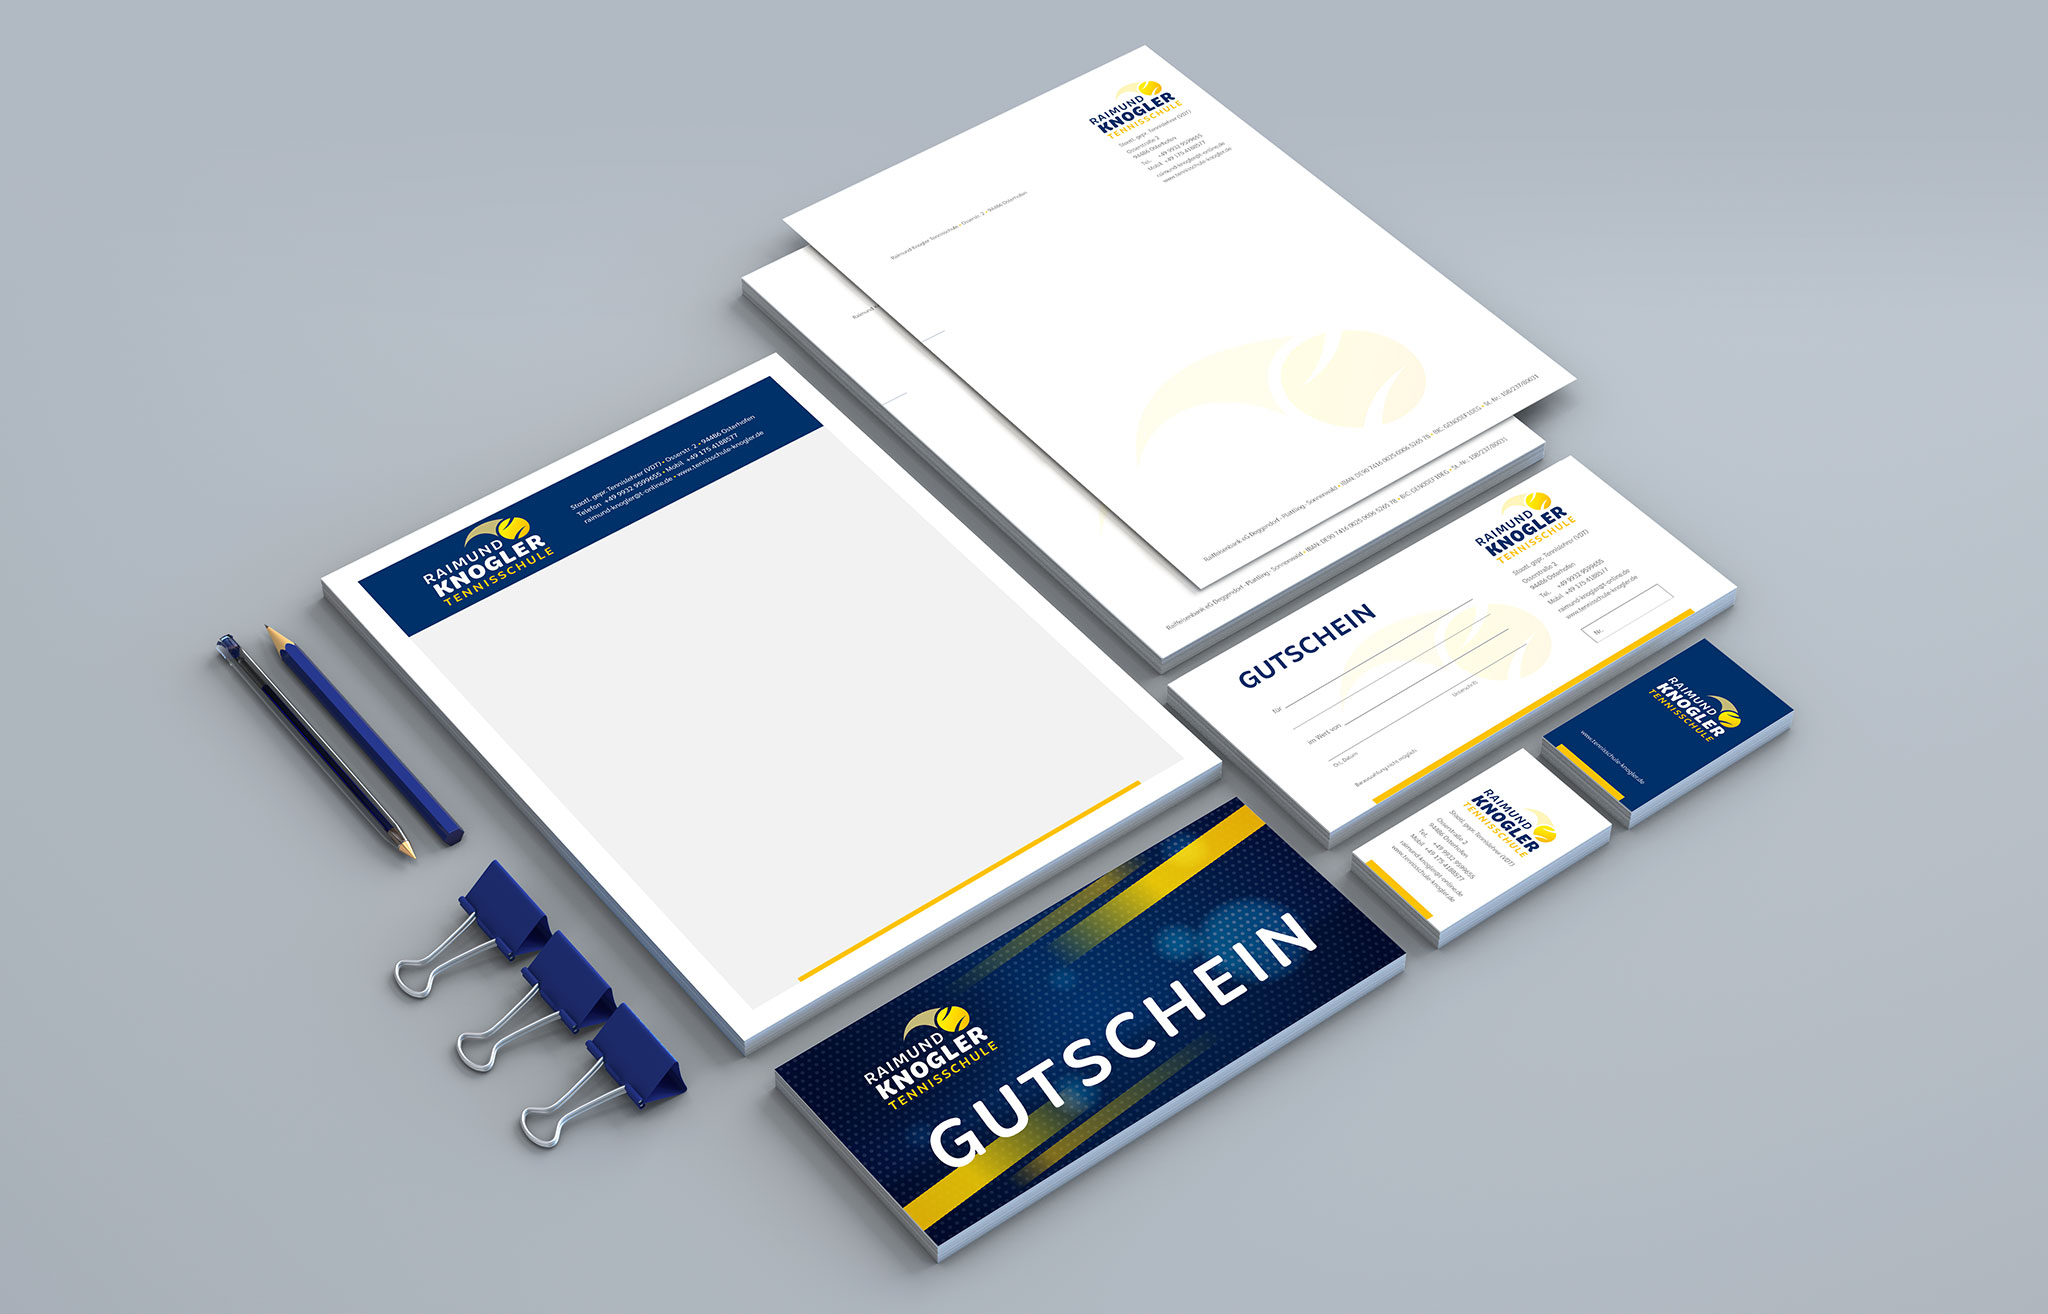 Raimund Knogler Corporate Design | Agentur Ritter